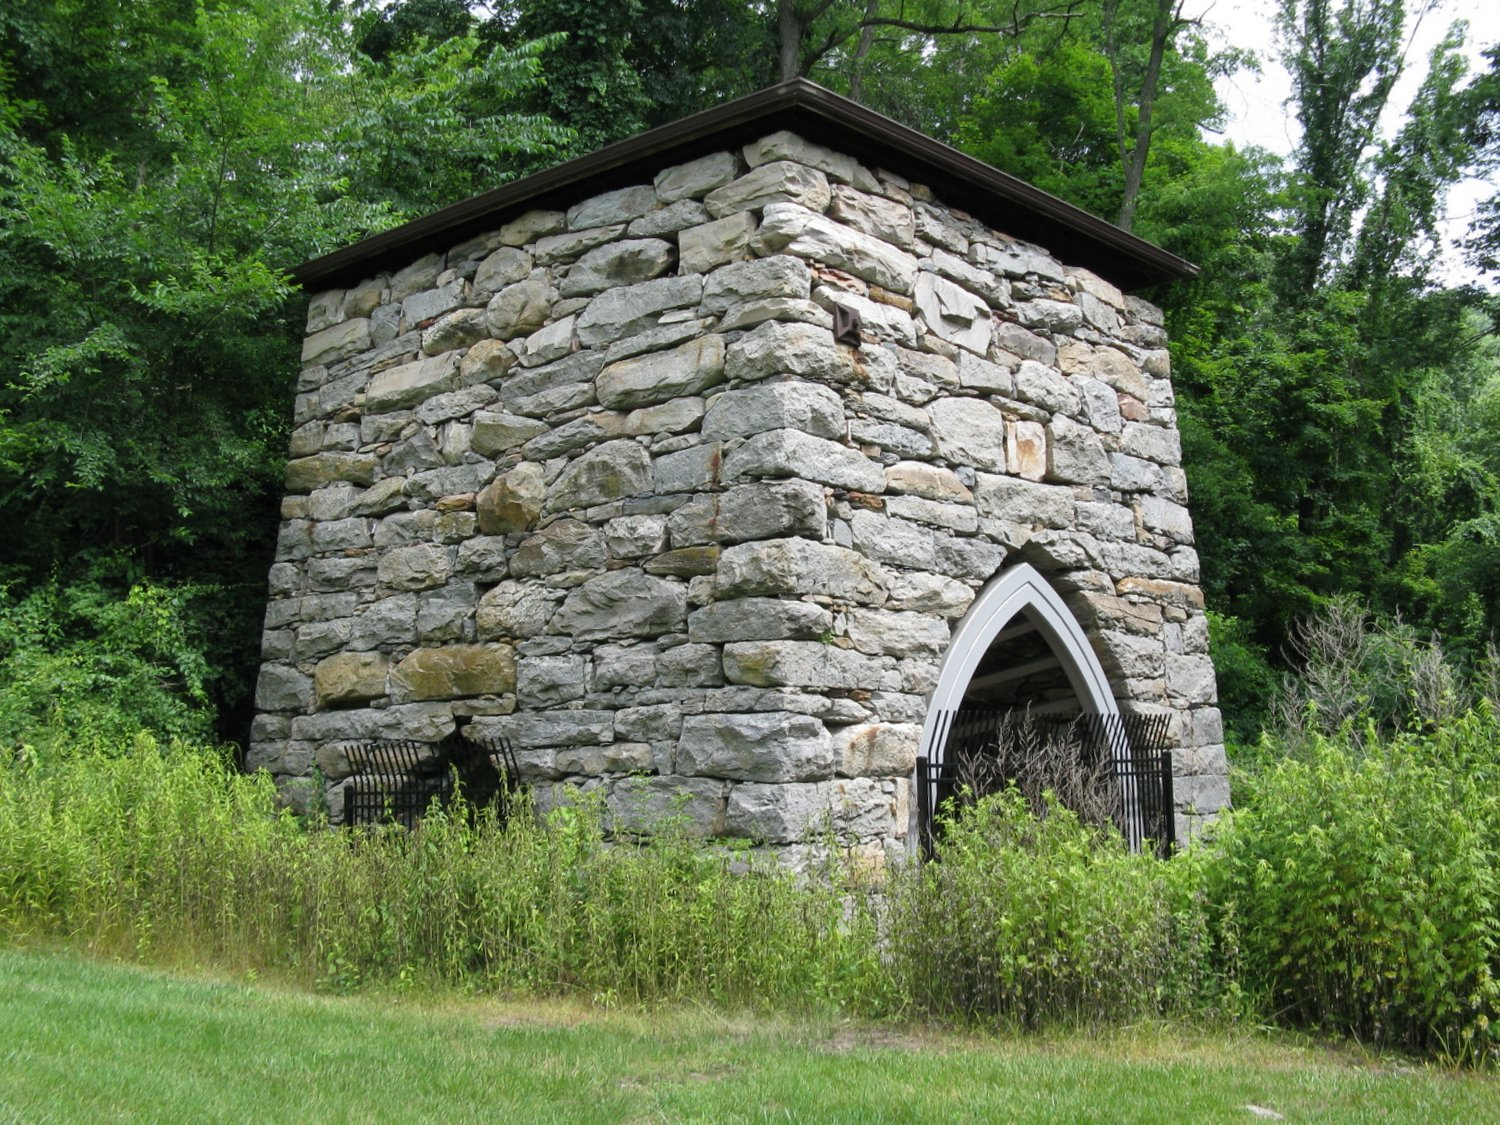 Kent Furnace, located on Route 7 in Kent, Connecticut was put into blast in 1826.